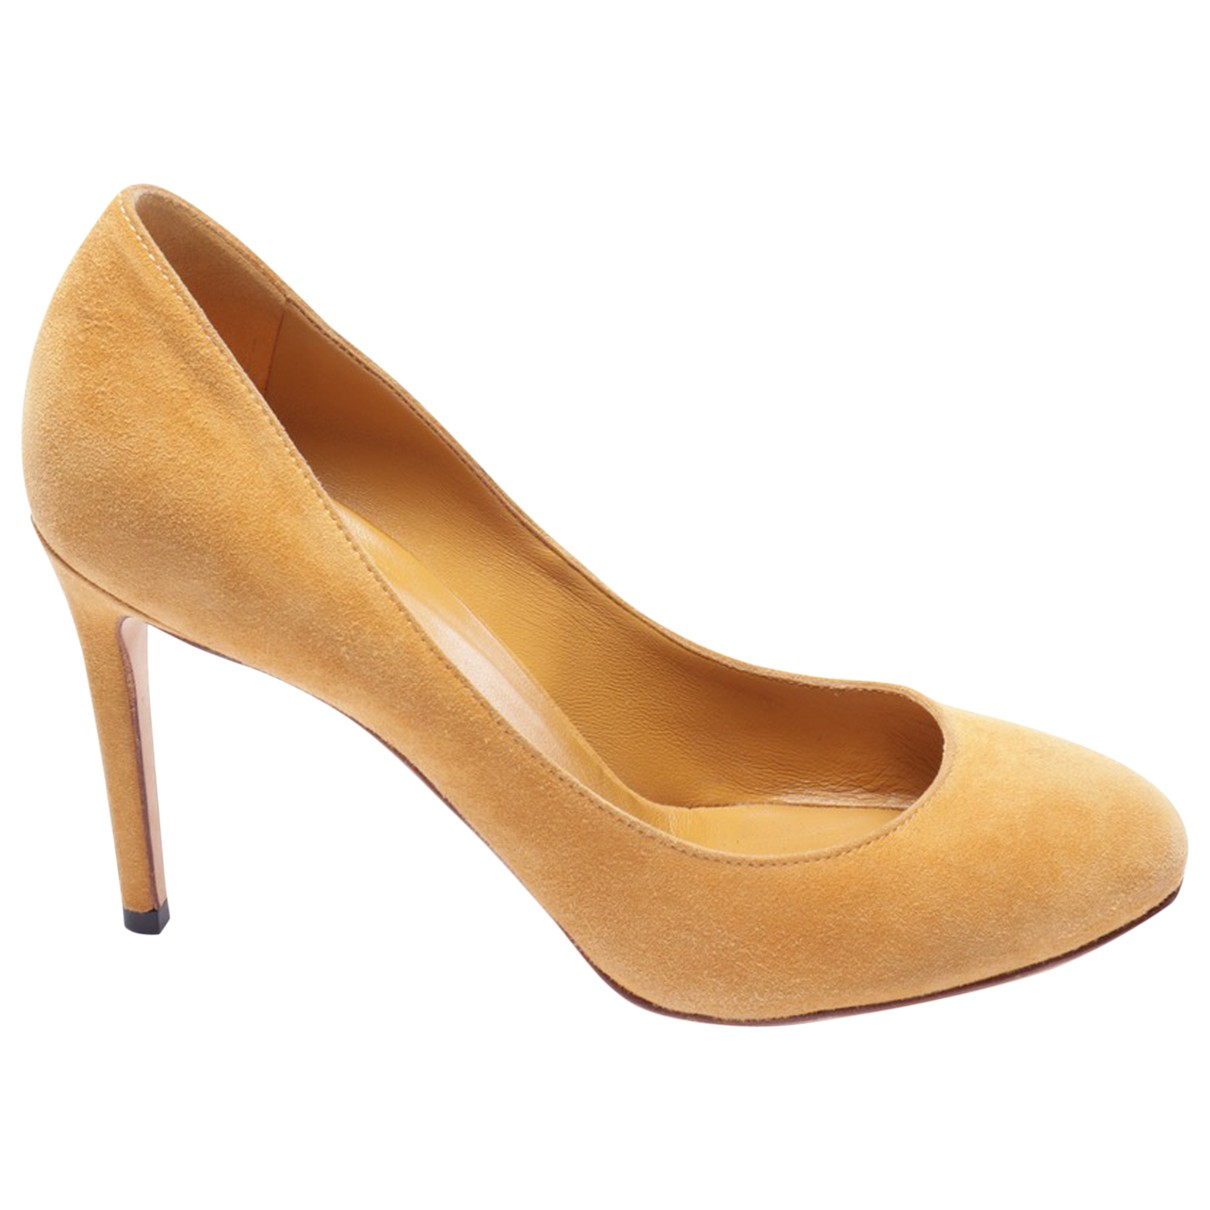 Gucci N Yellow Leather Heels for Women 36.5 EU